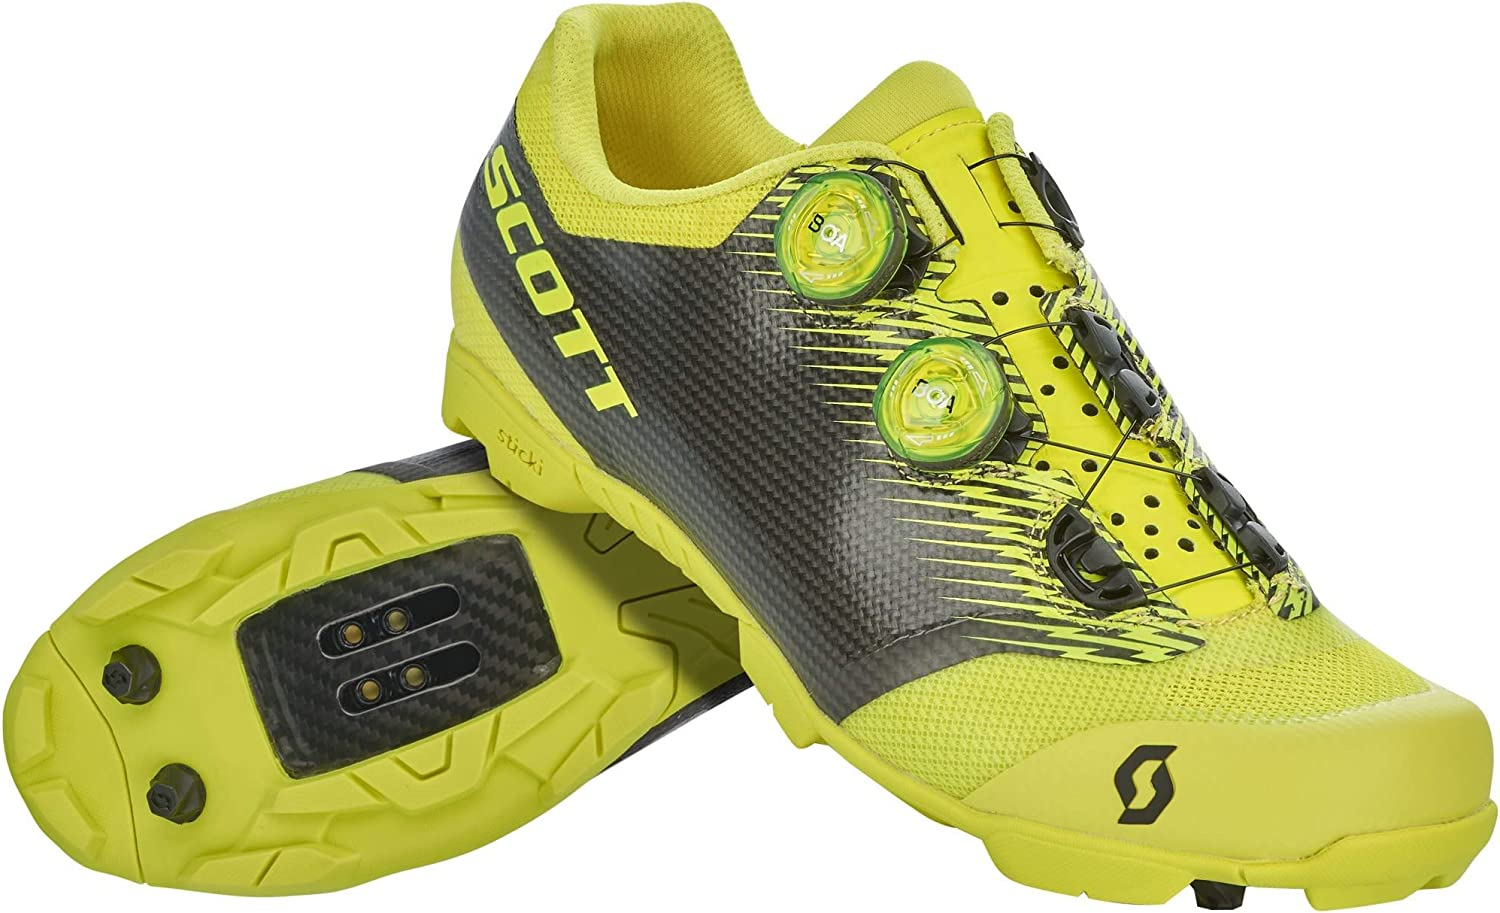 Scott MTB RC SL 2020 - Zapatillas de ciclismo, color amarillo y negro